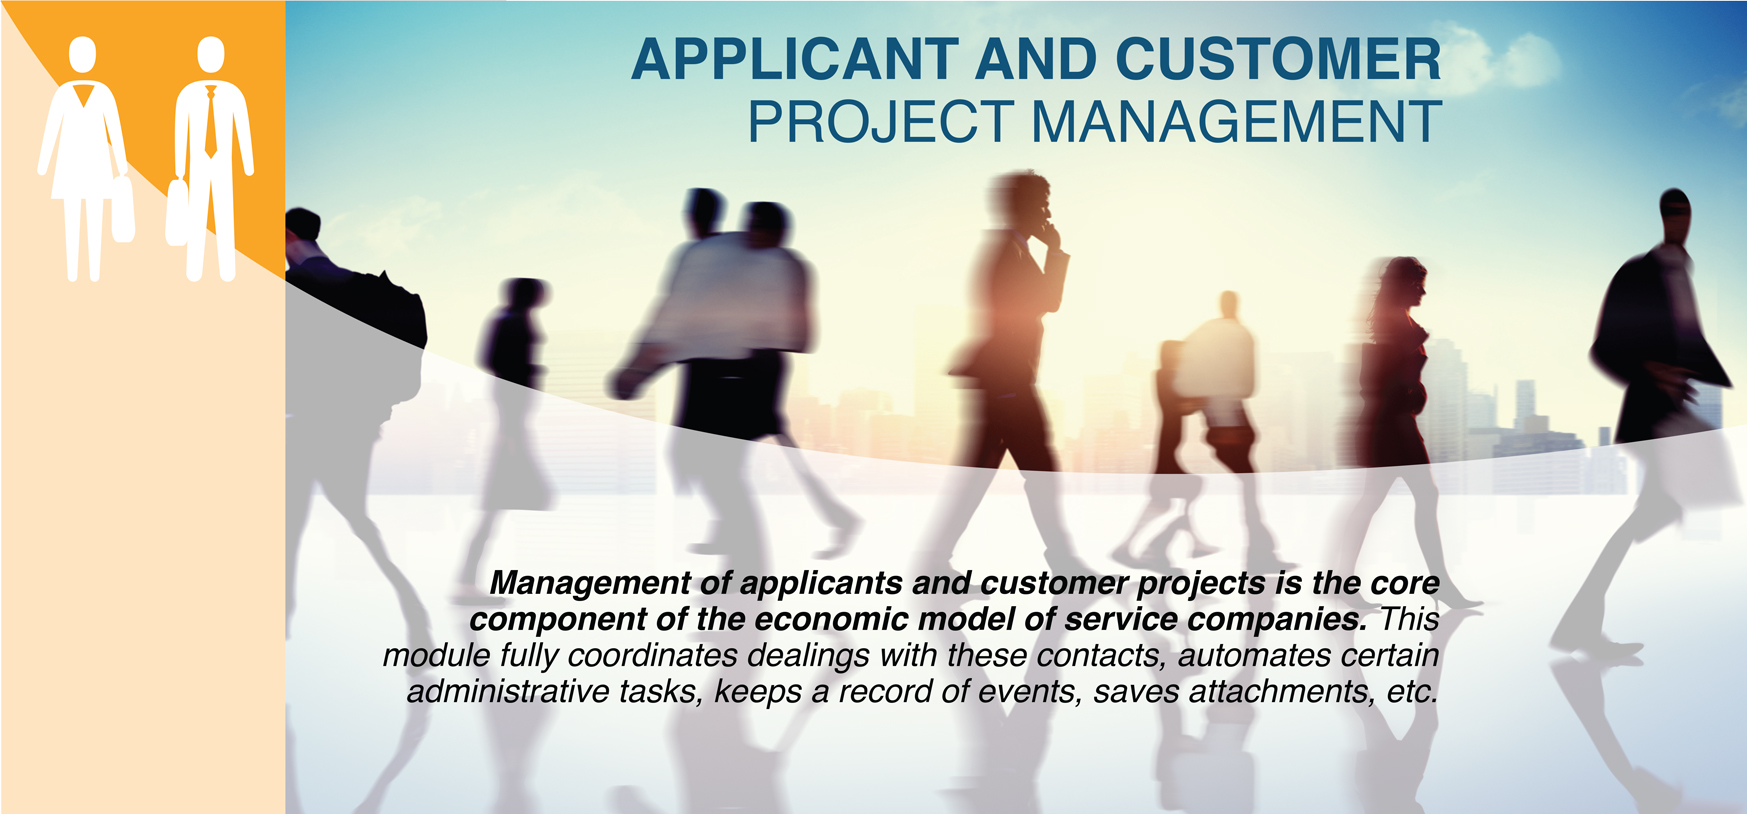 BANNER APPLICANT AND CUSTOMER PROJECT MANAGEMENT